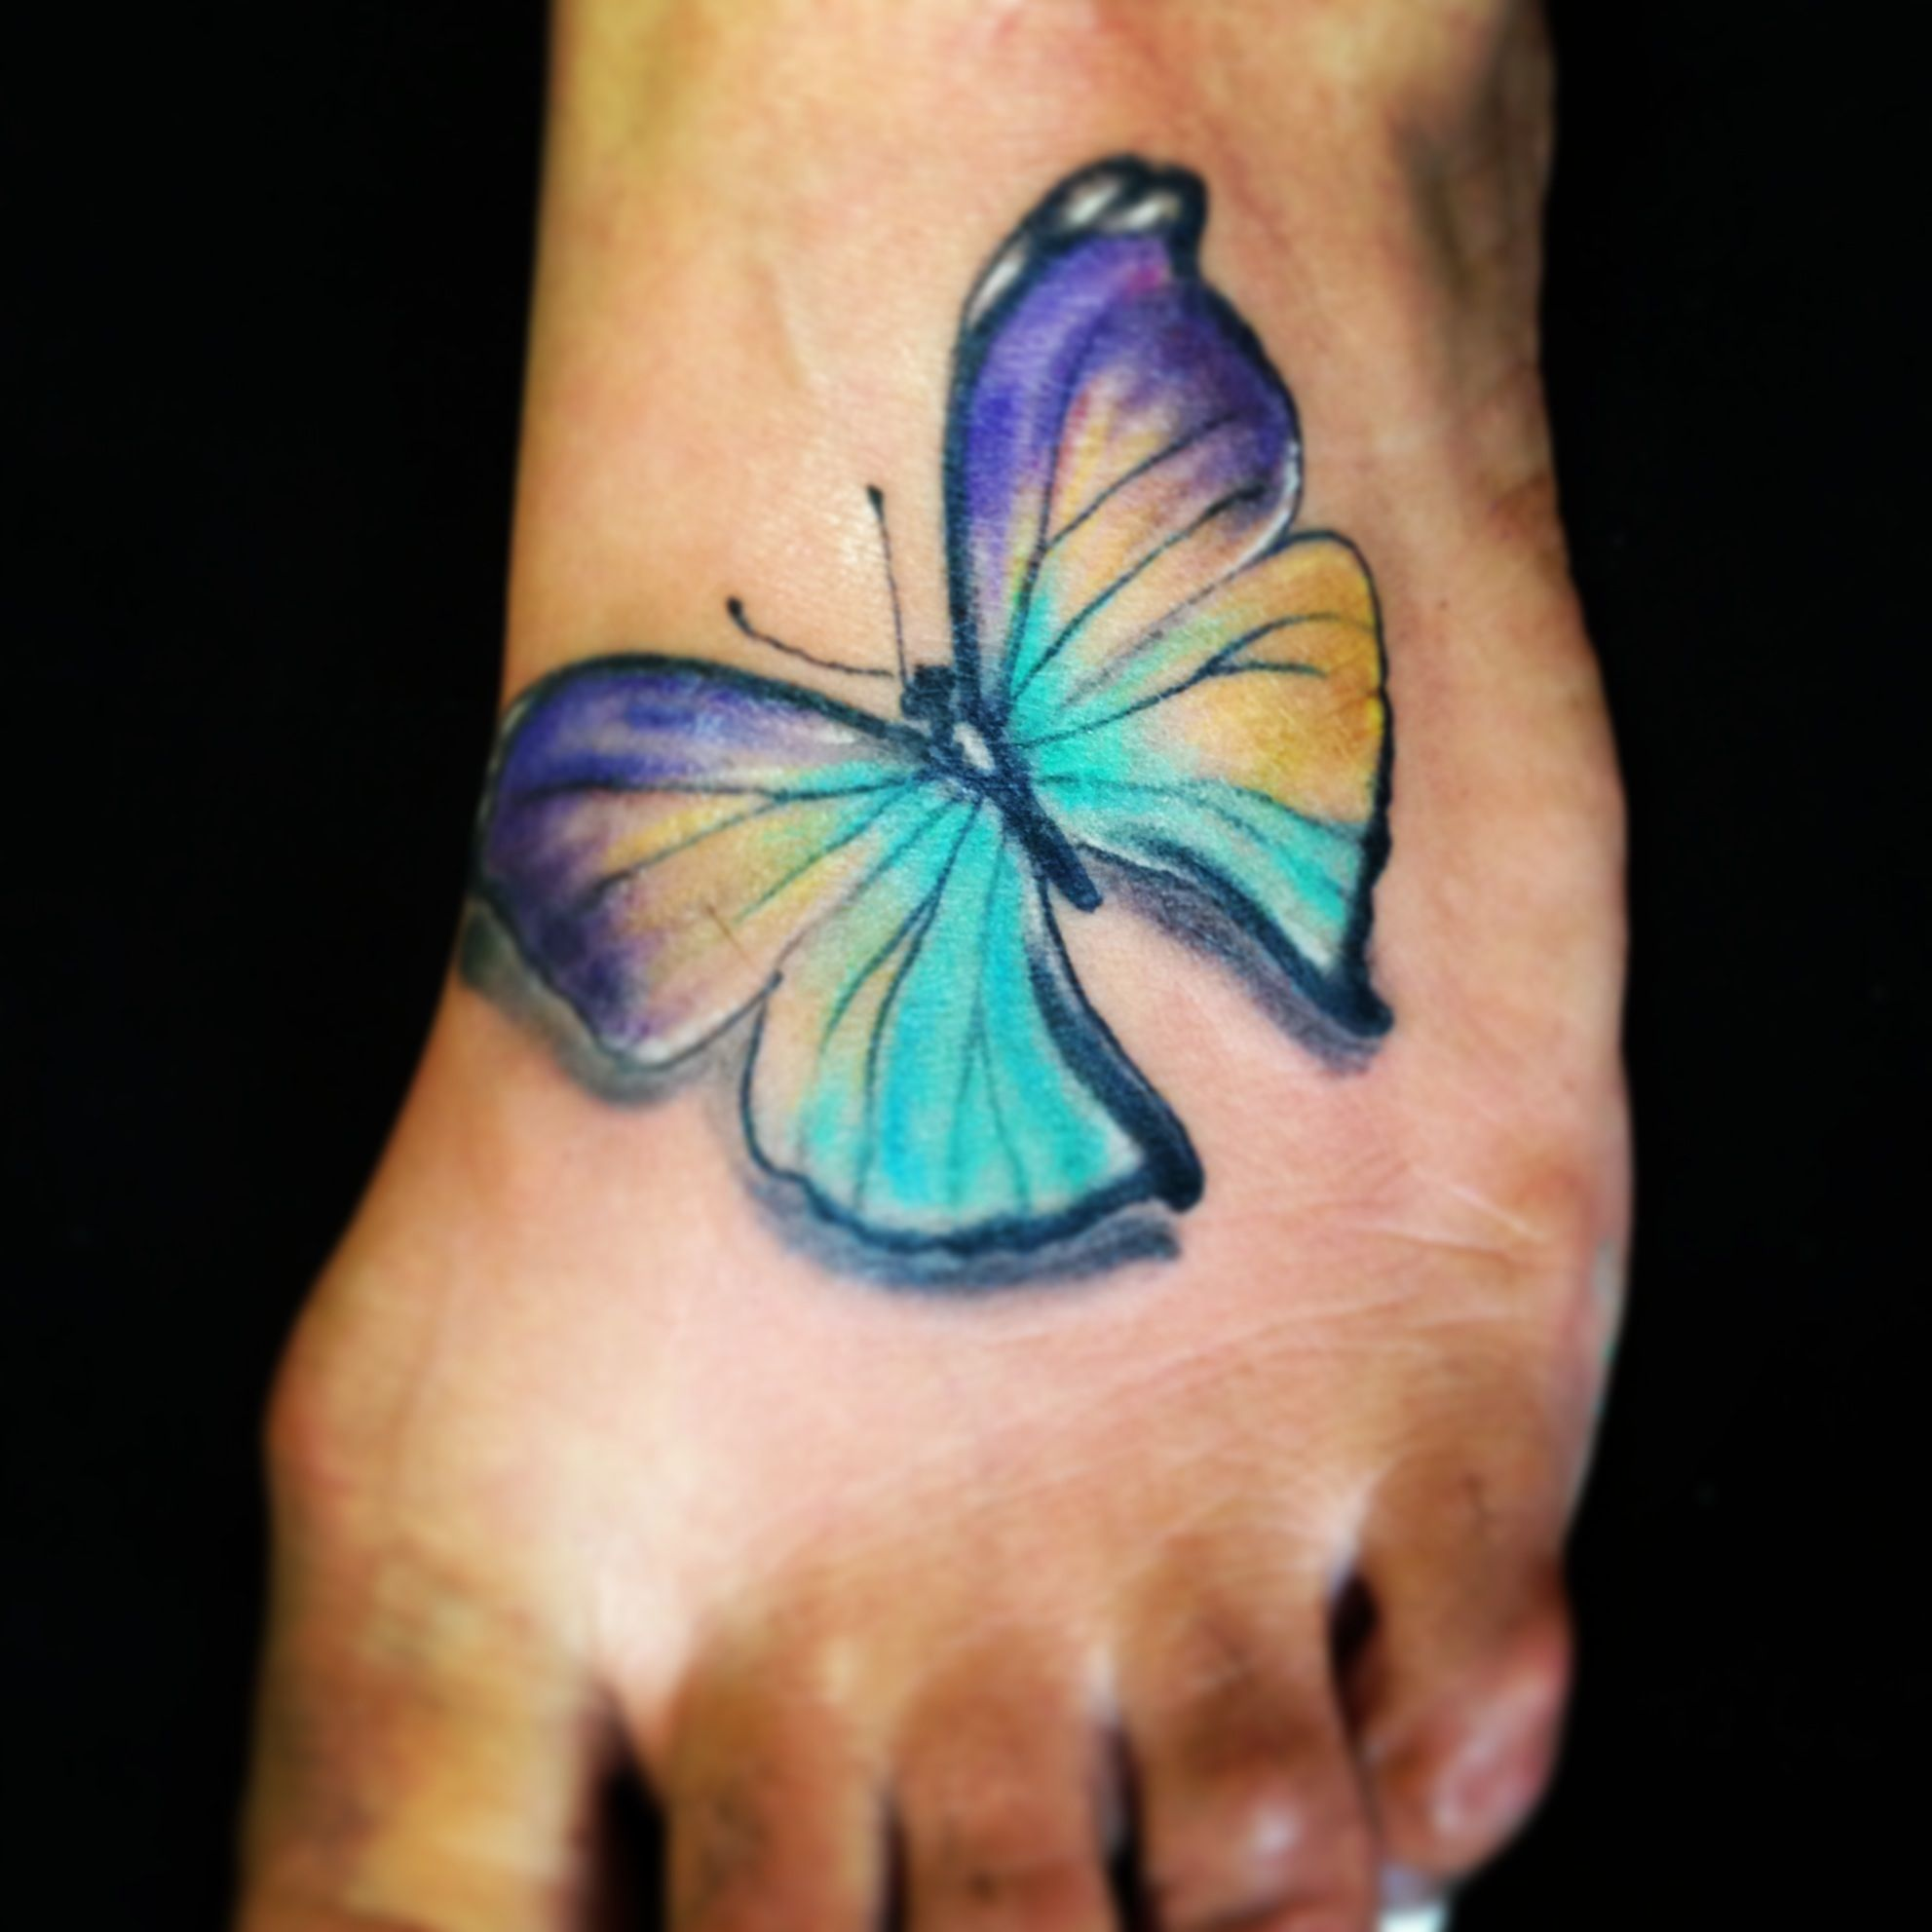 The o jays butterfly tattoos and clothes on pinterest - Butterfly Tattoo On Foot By Spirits In The Flesh Tattoo San Francisco Ca